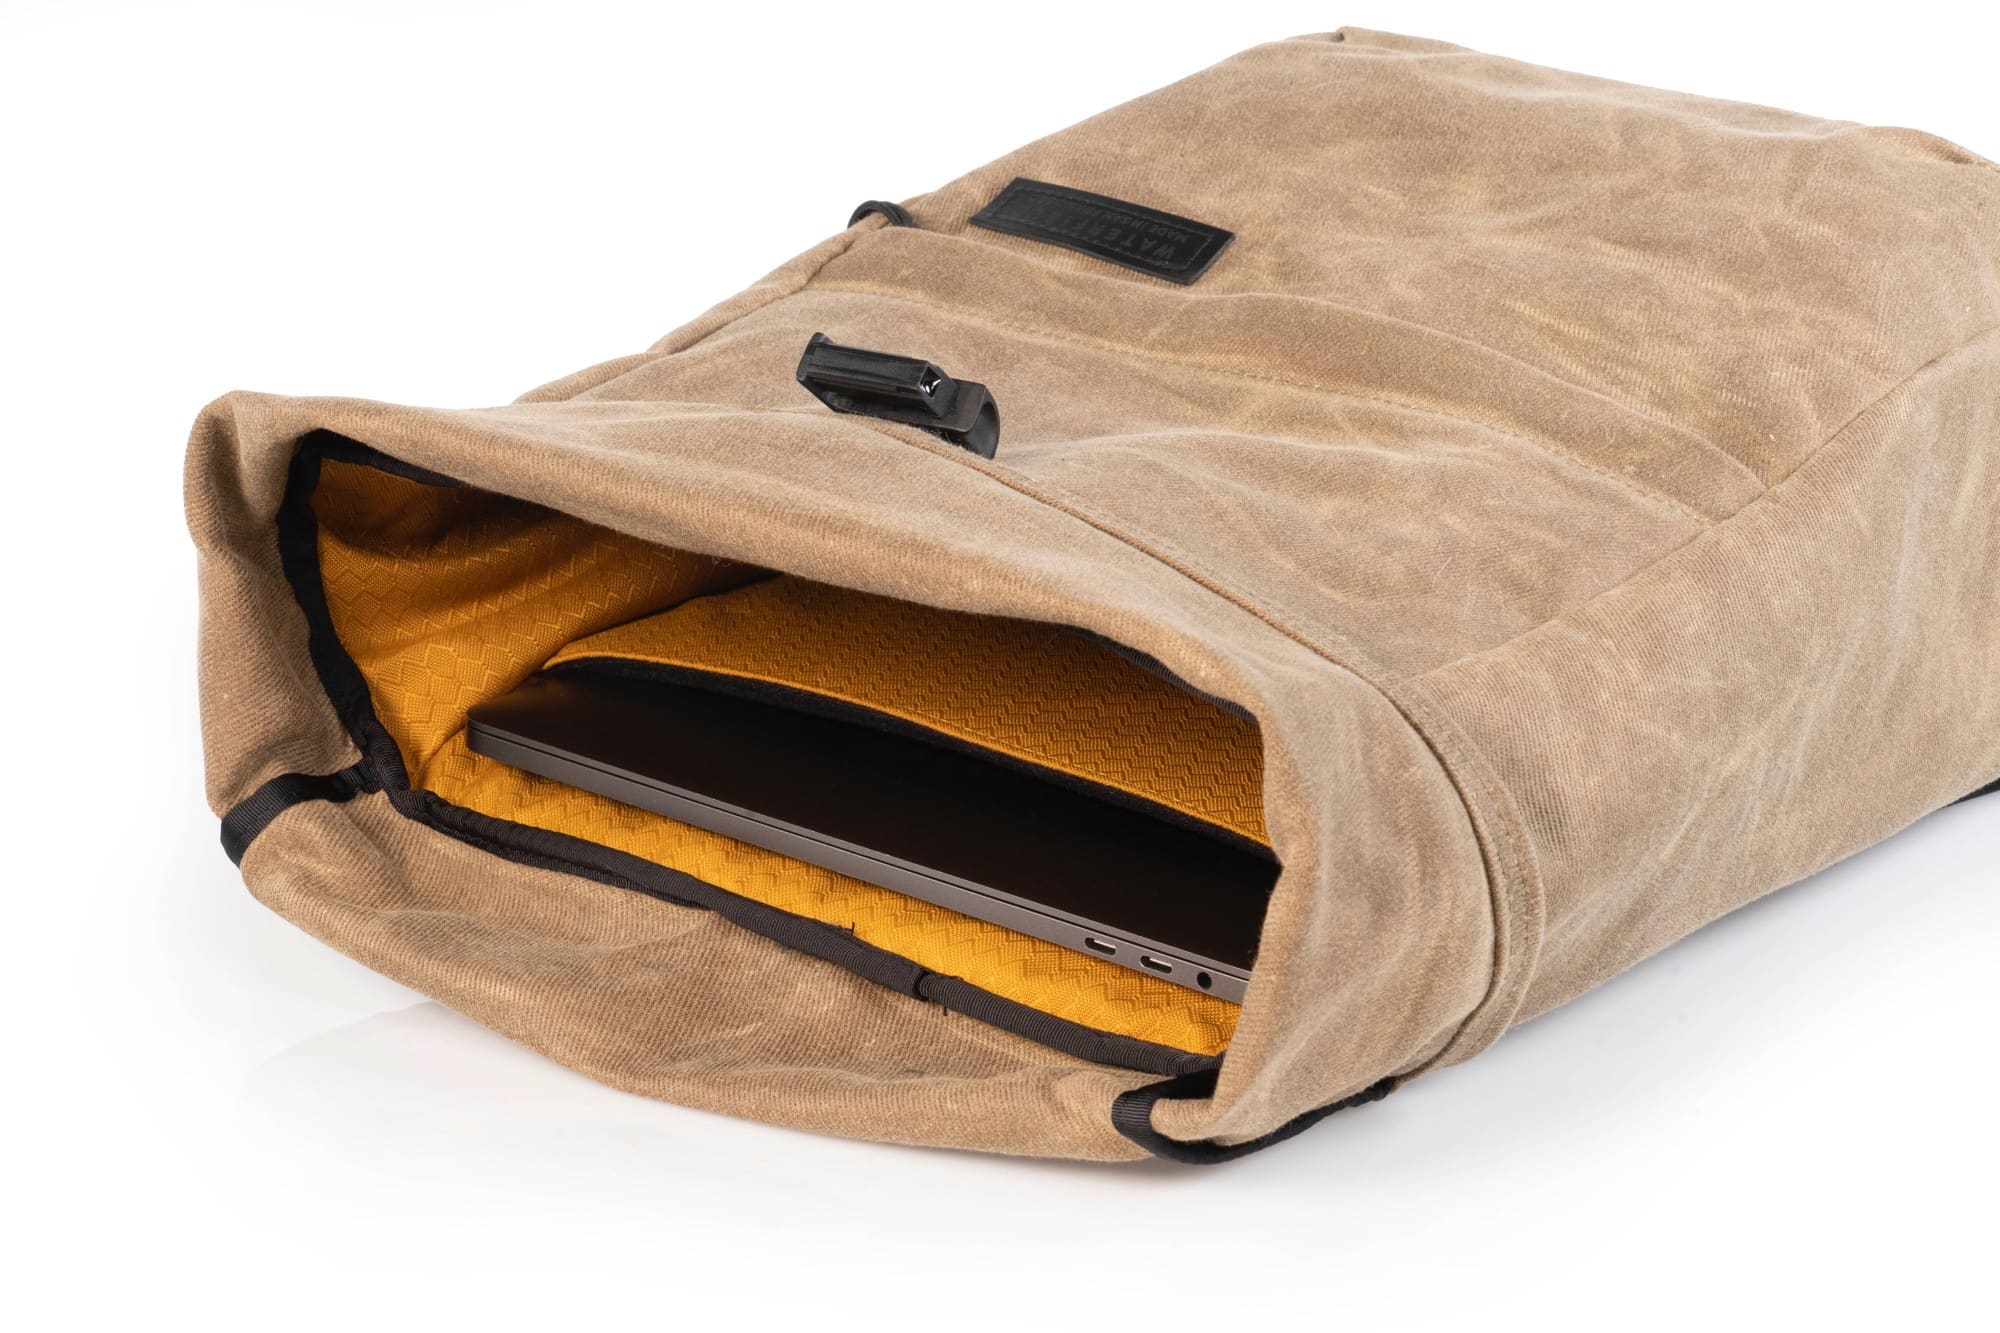 The Tech Rolltop has an internal tablet pocket, and WaterField Designs fantastic gold-colored lining.